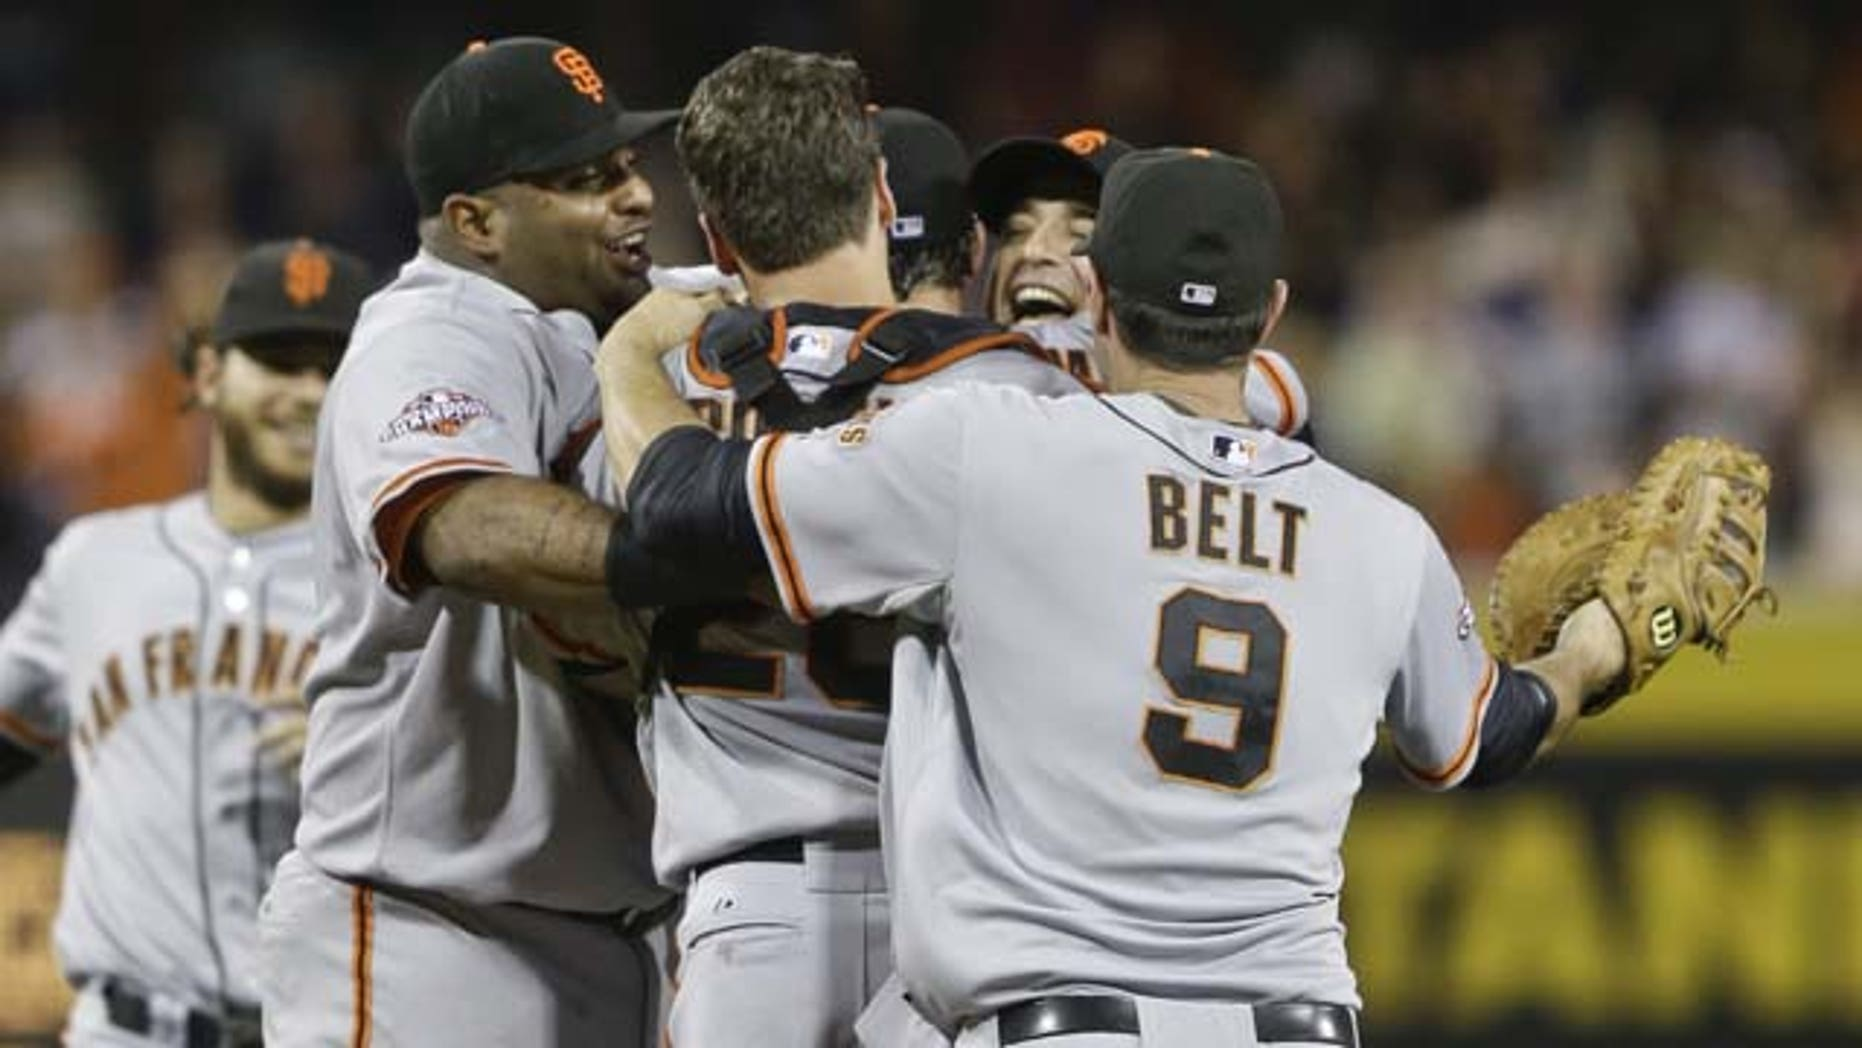 July 13, 2013: San Francisco Giants celebrate after the no hitter thrown by Tim Lincecum against the San Diego Padres in a baseball game in San Diego